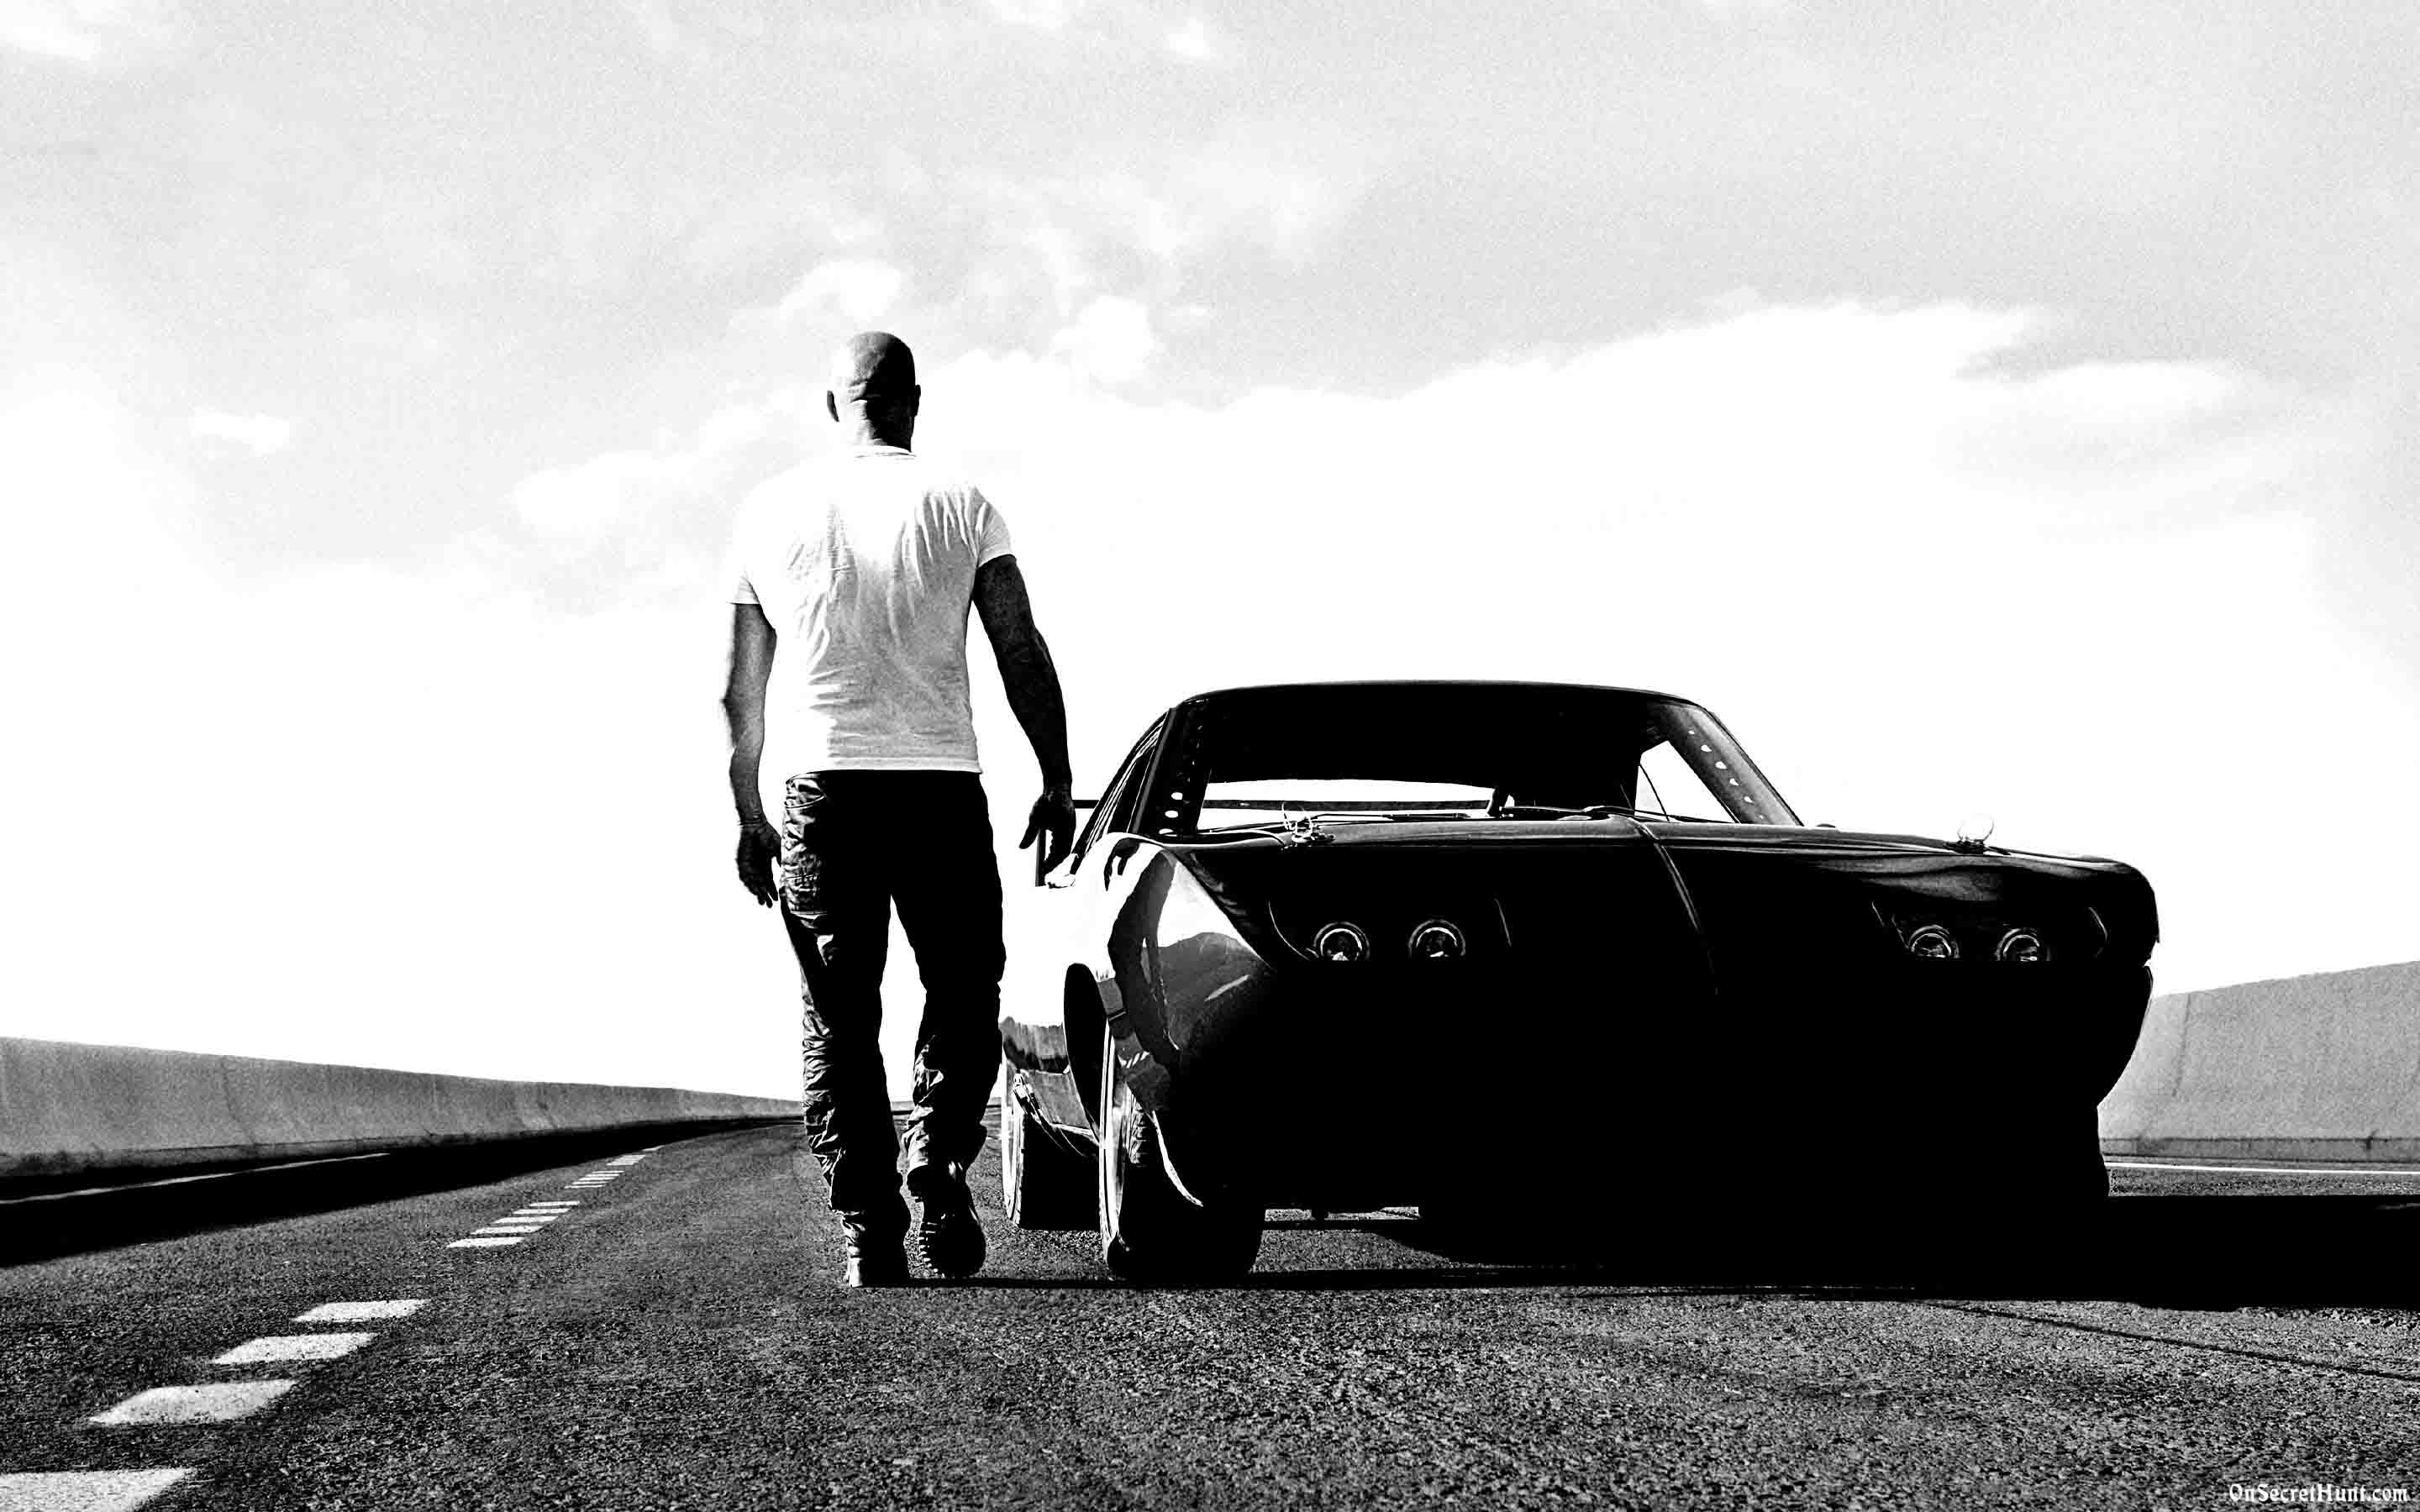 47+ Fast and Furious Wallpapers HD on WallpaperSafari